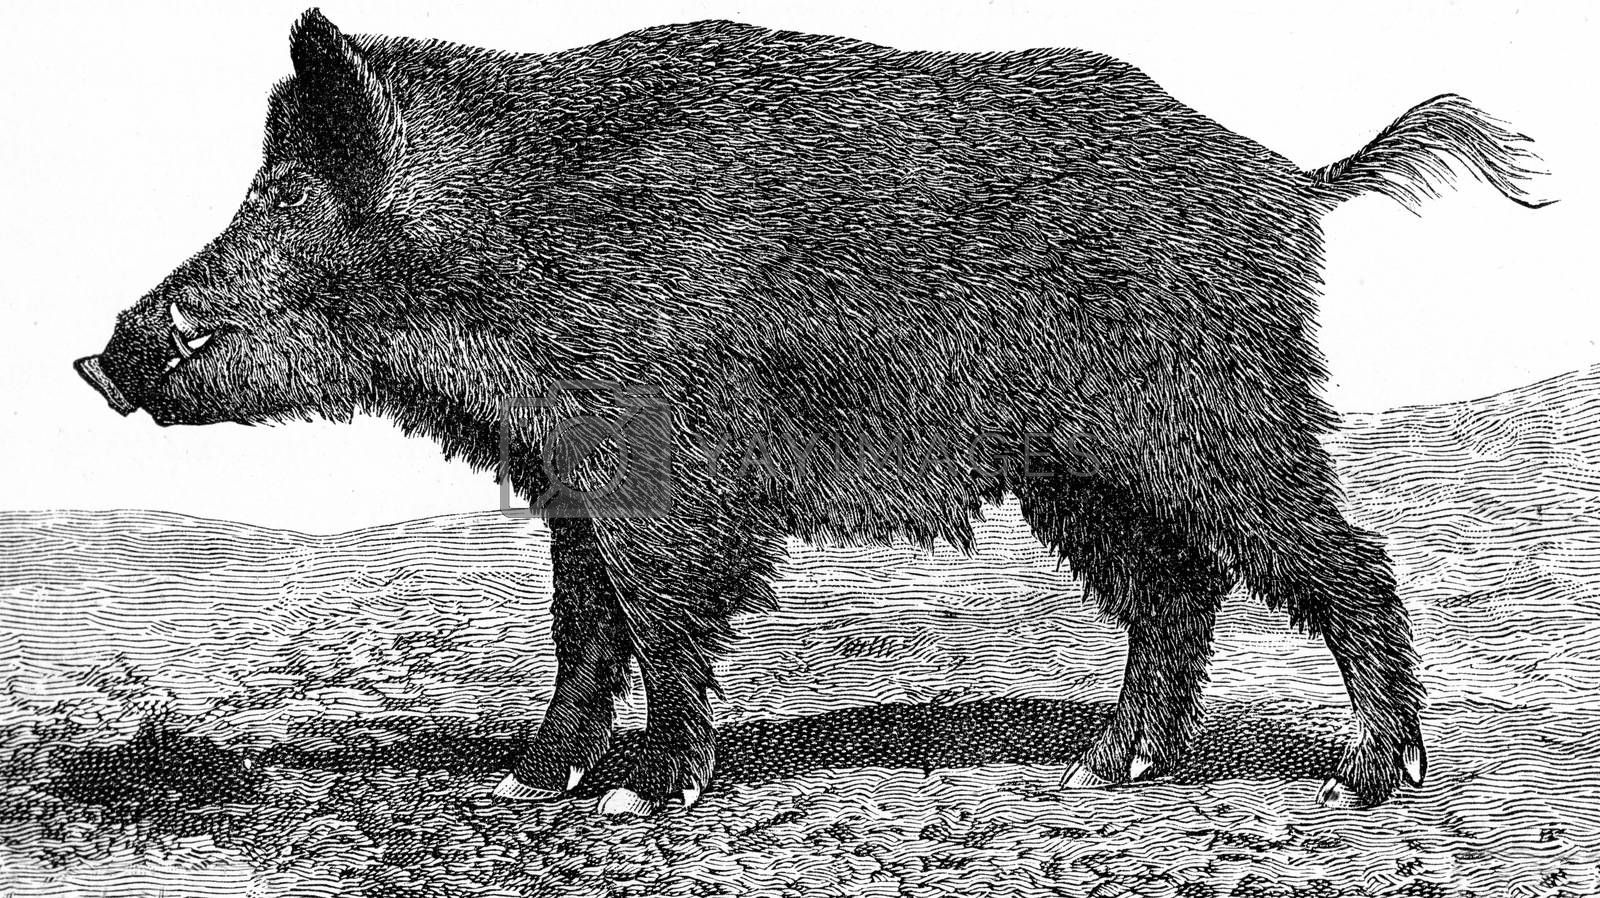 Royalty free image of The boar, Sus scrofa, vintage engraving. by Morphart